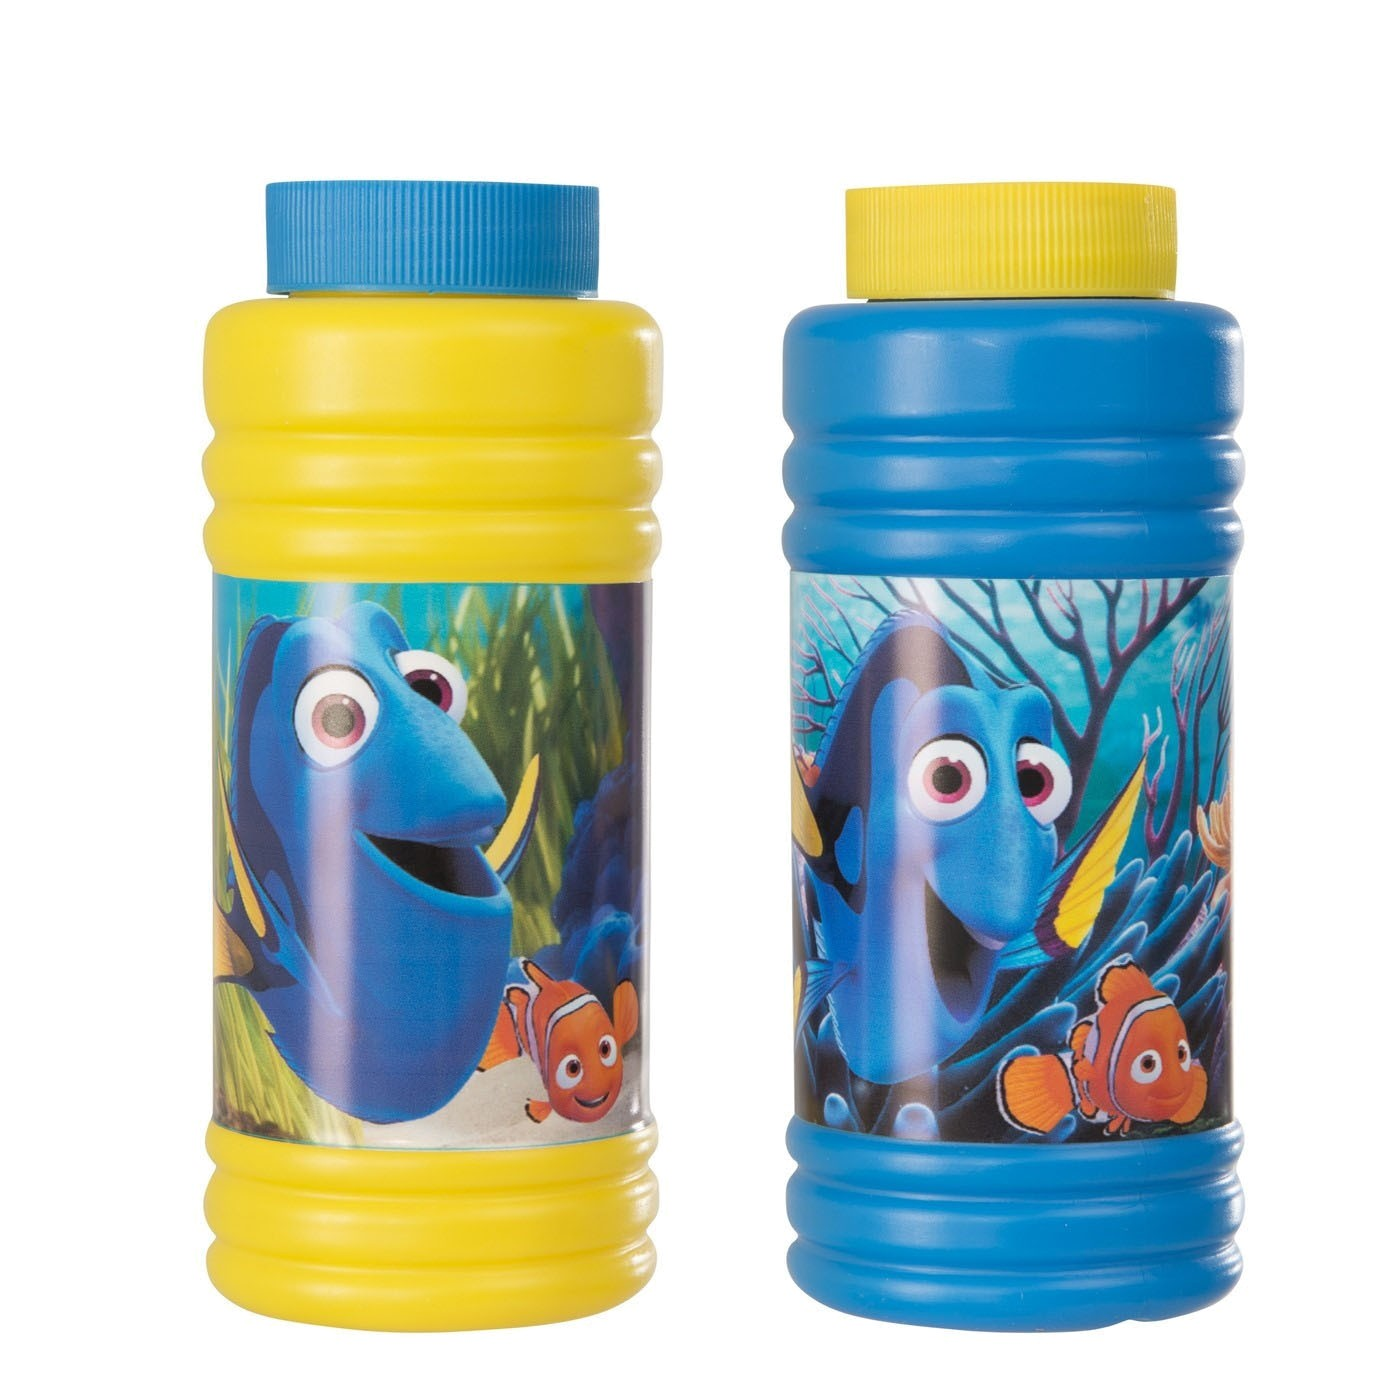 FINDING DORY BUBBLE TWIN